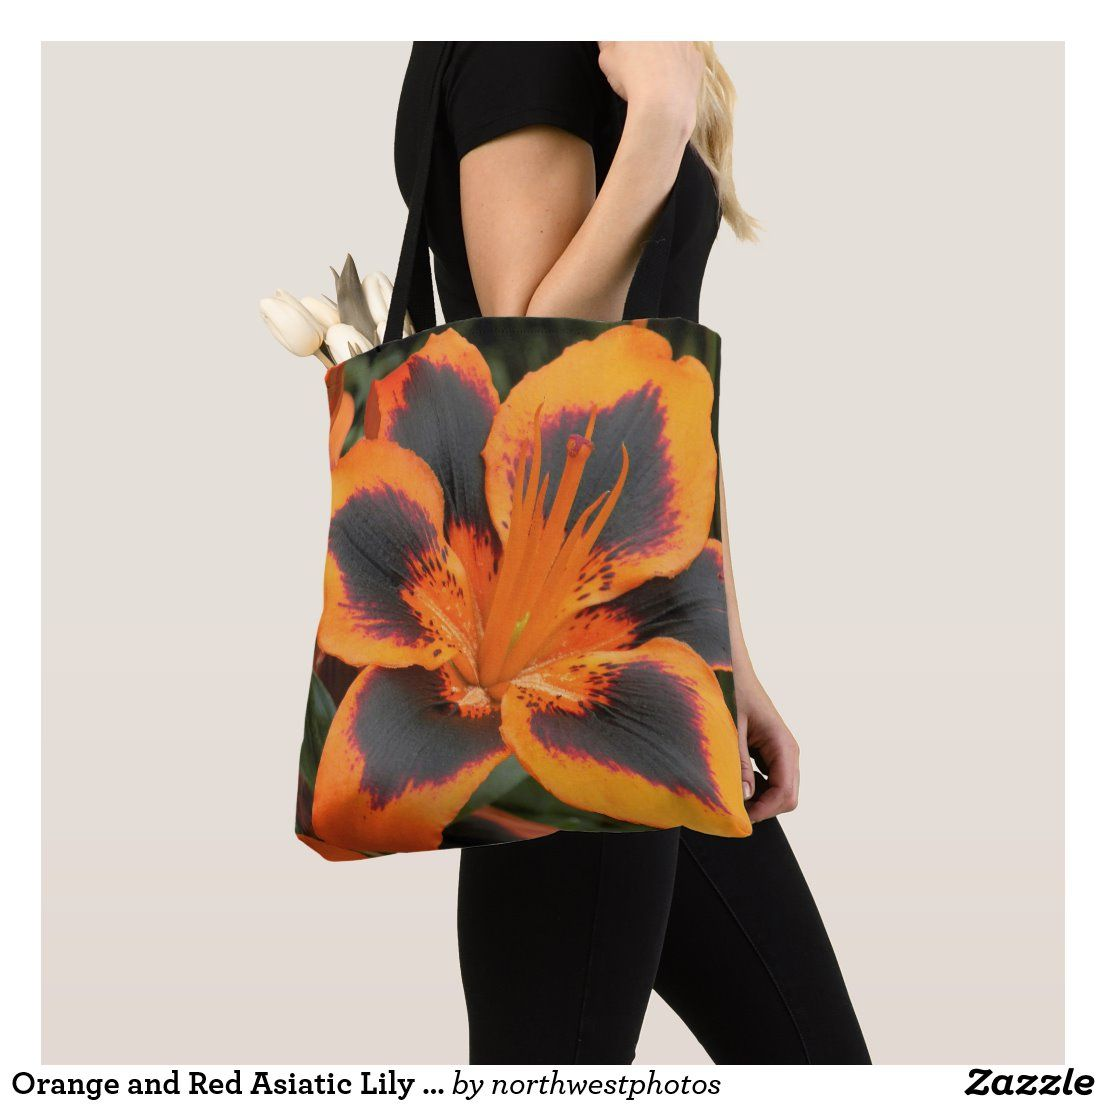 Orange Asiatic Lily Floral Photo Tote Bag